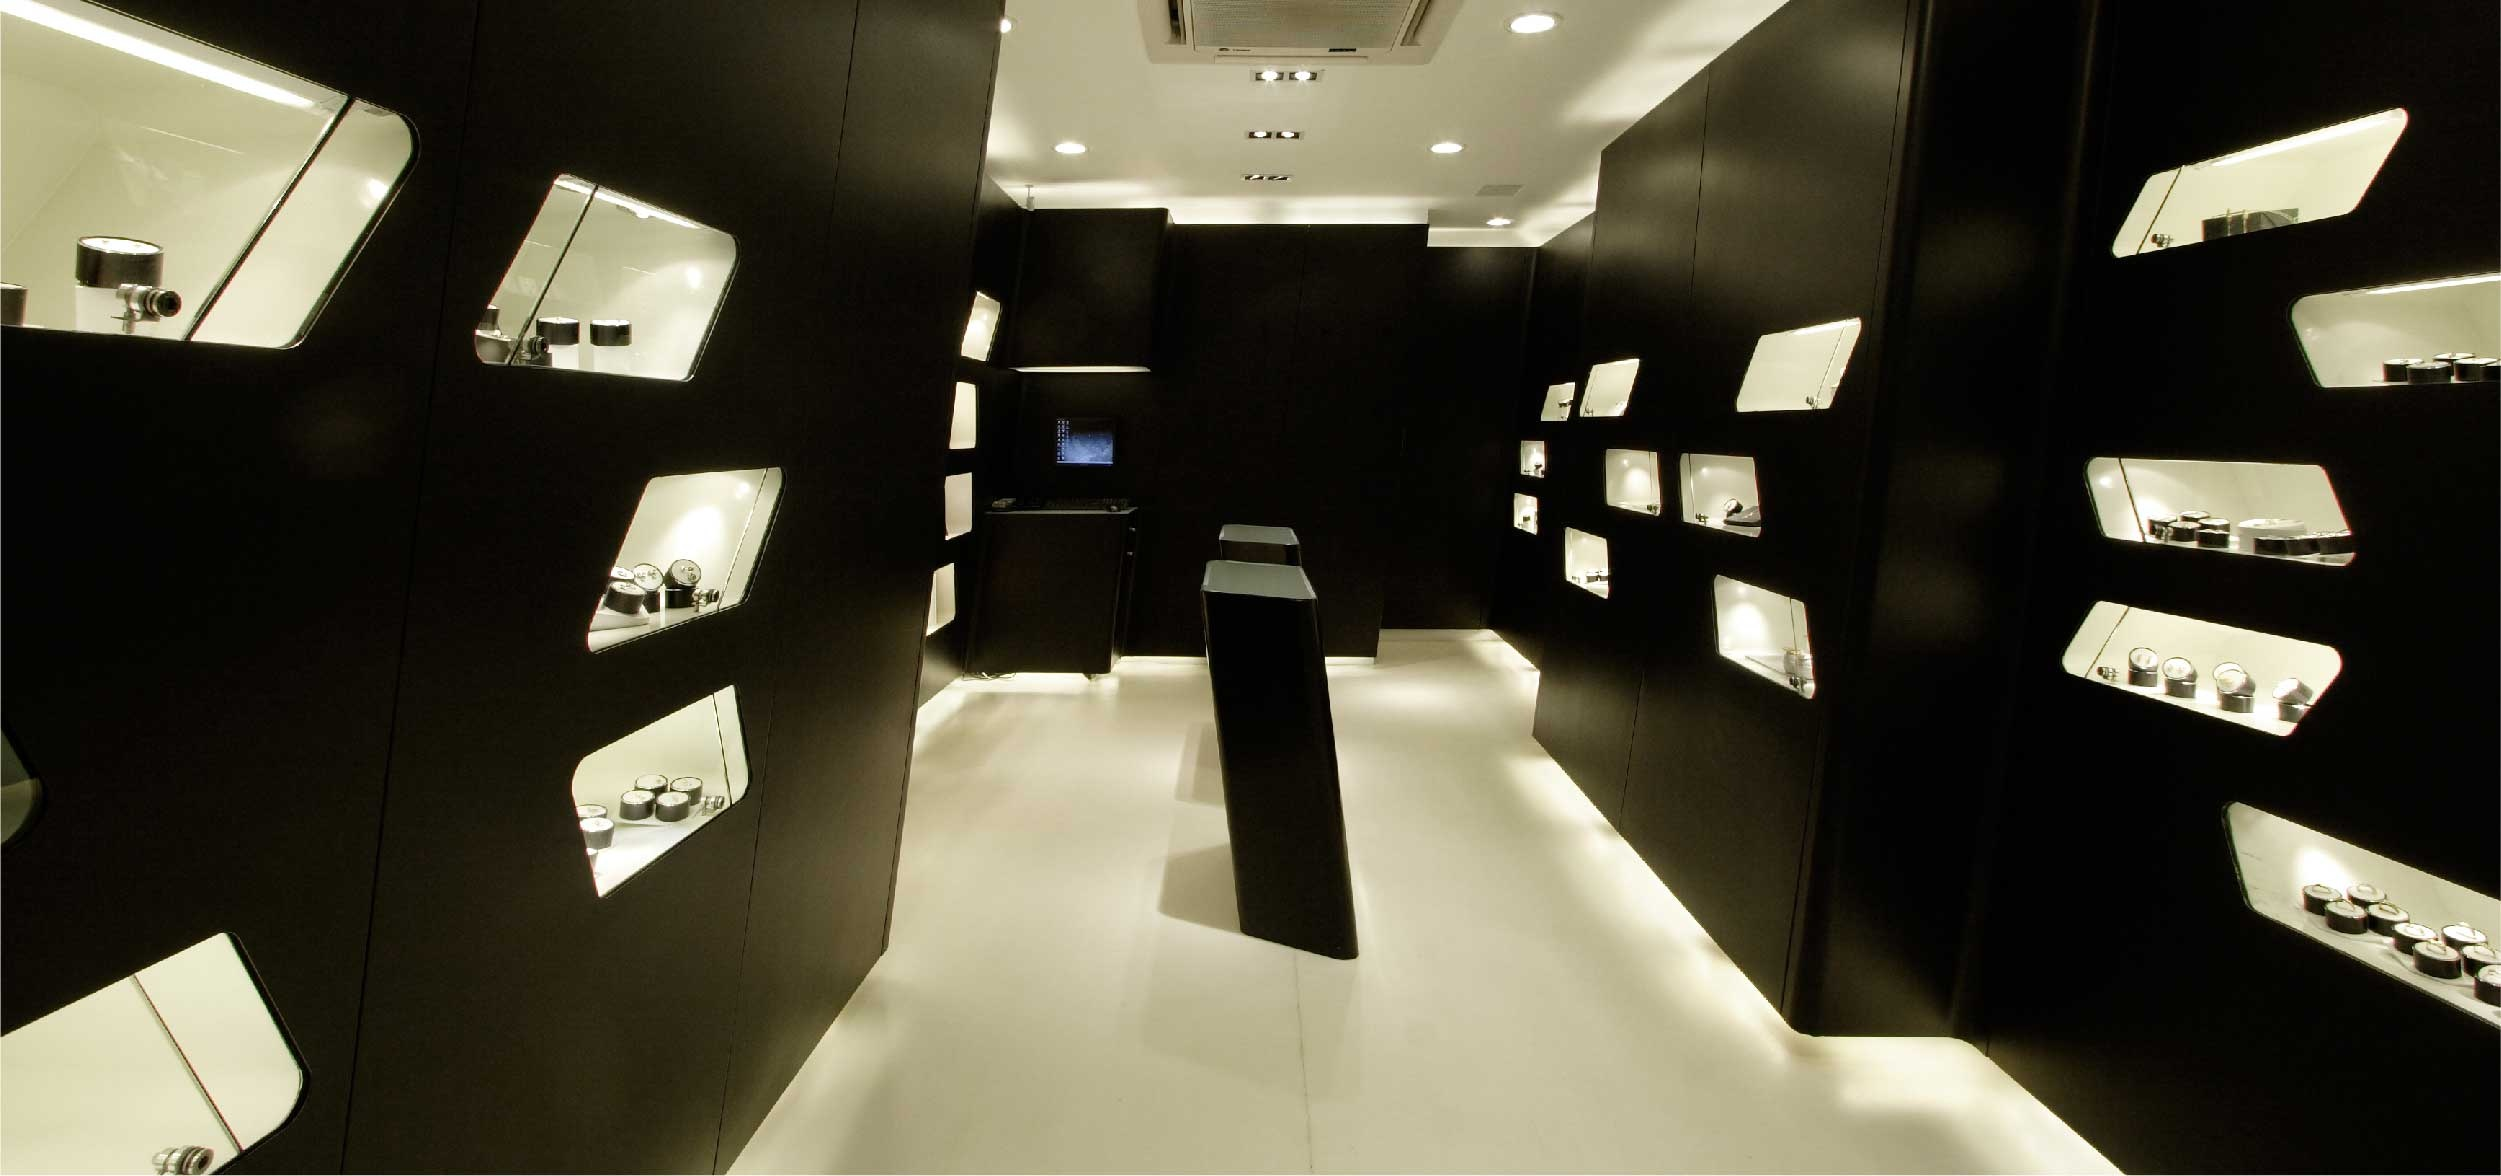 Retail design for accessory brand Carbon's 7th store